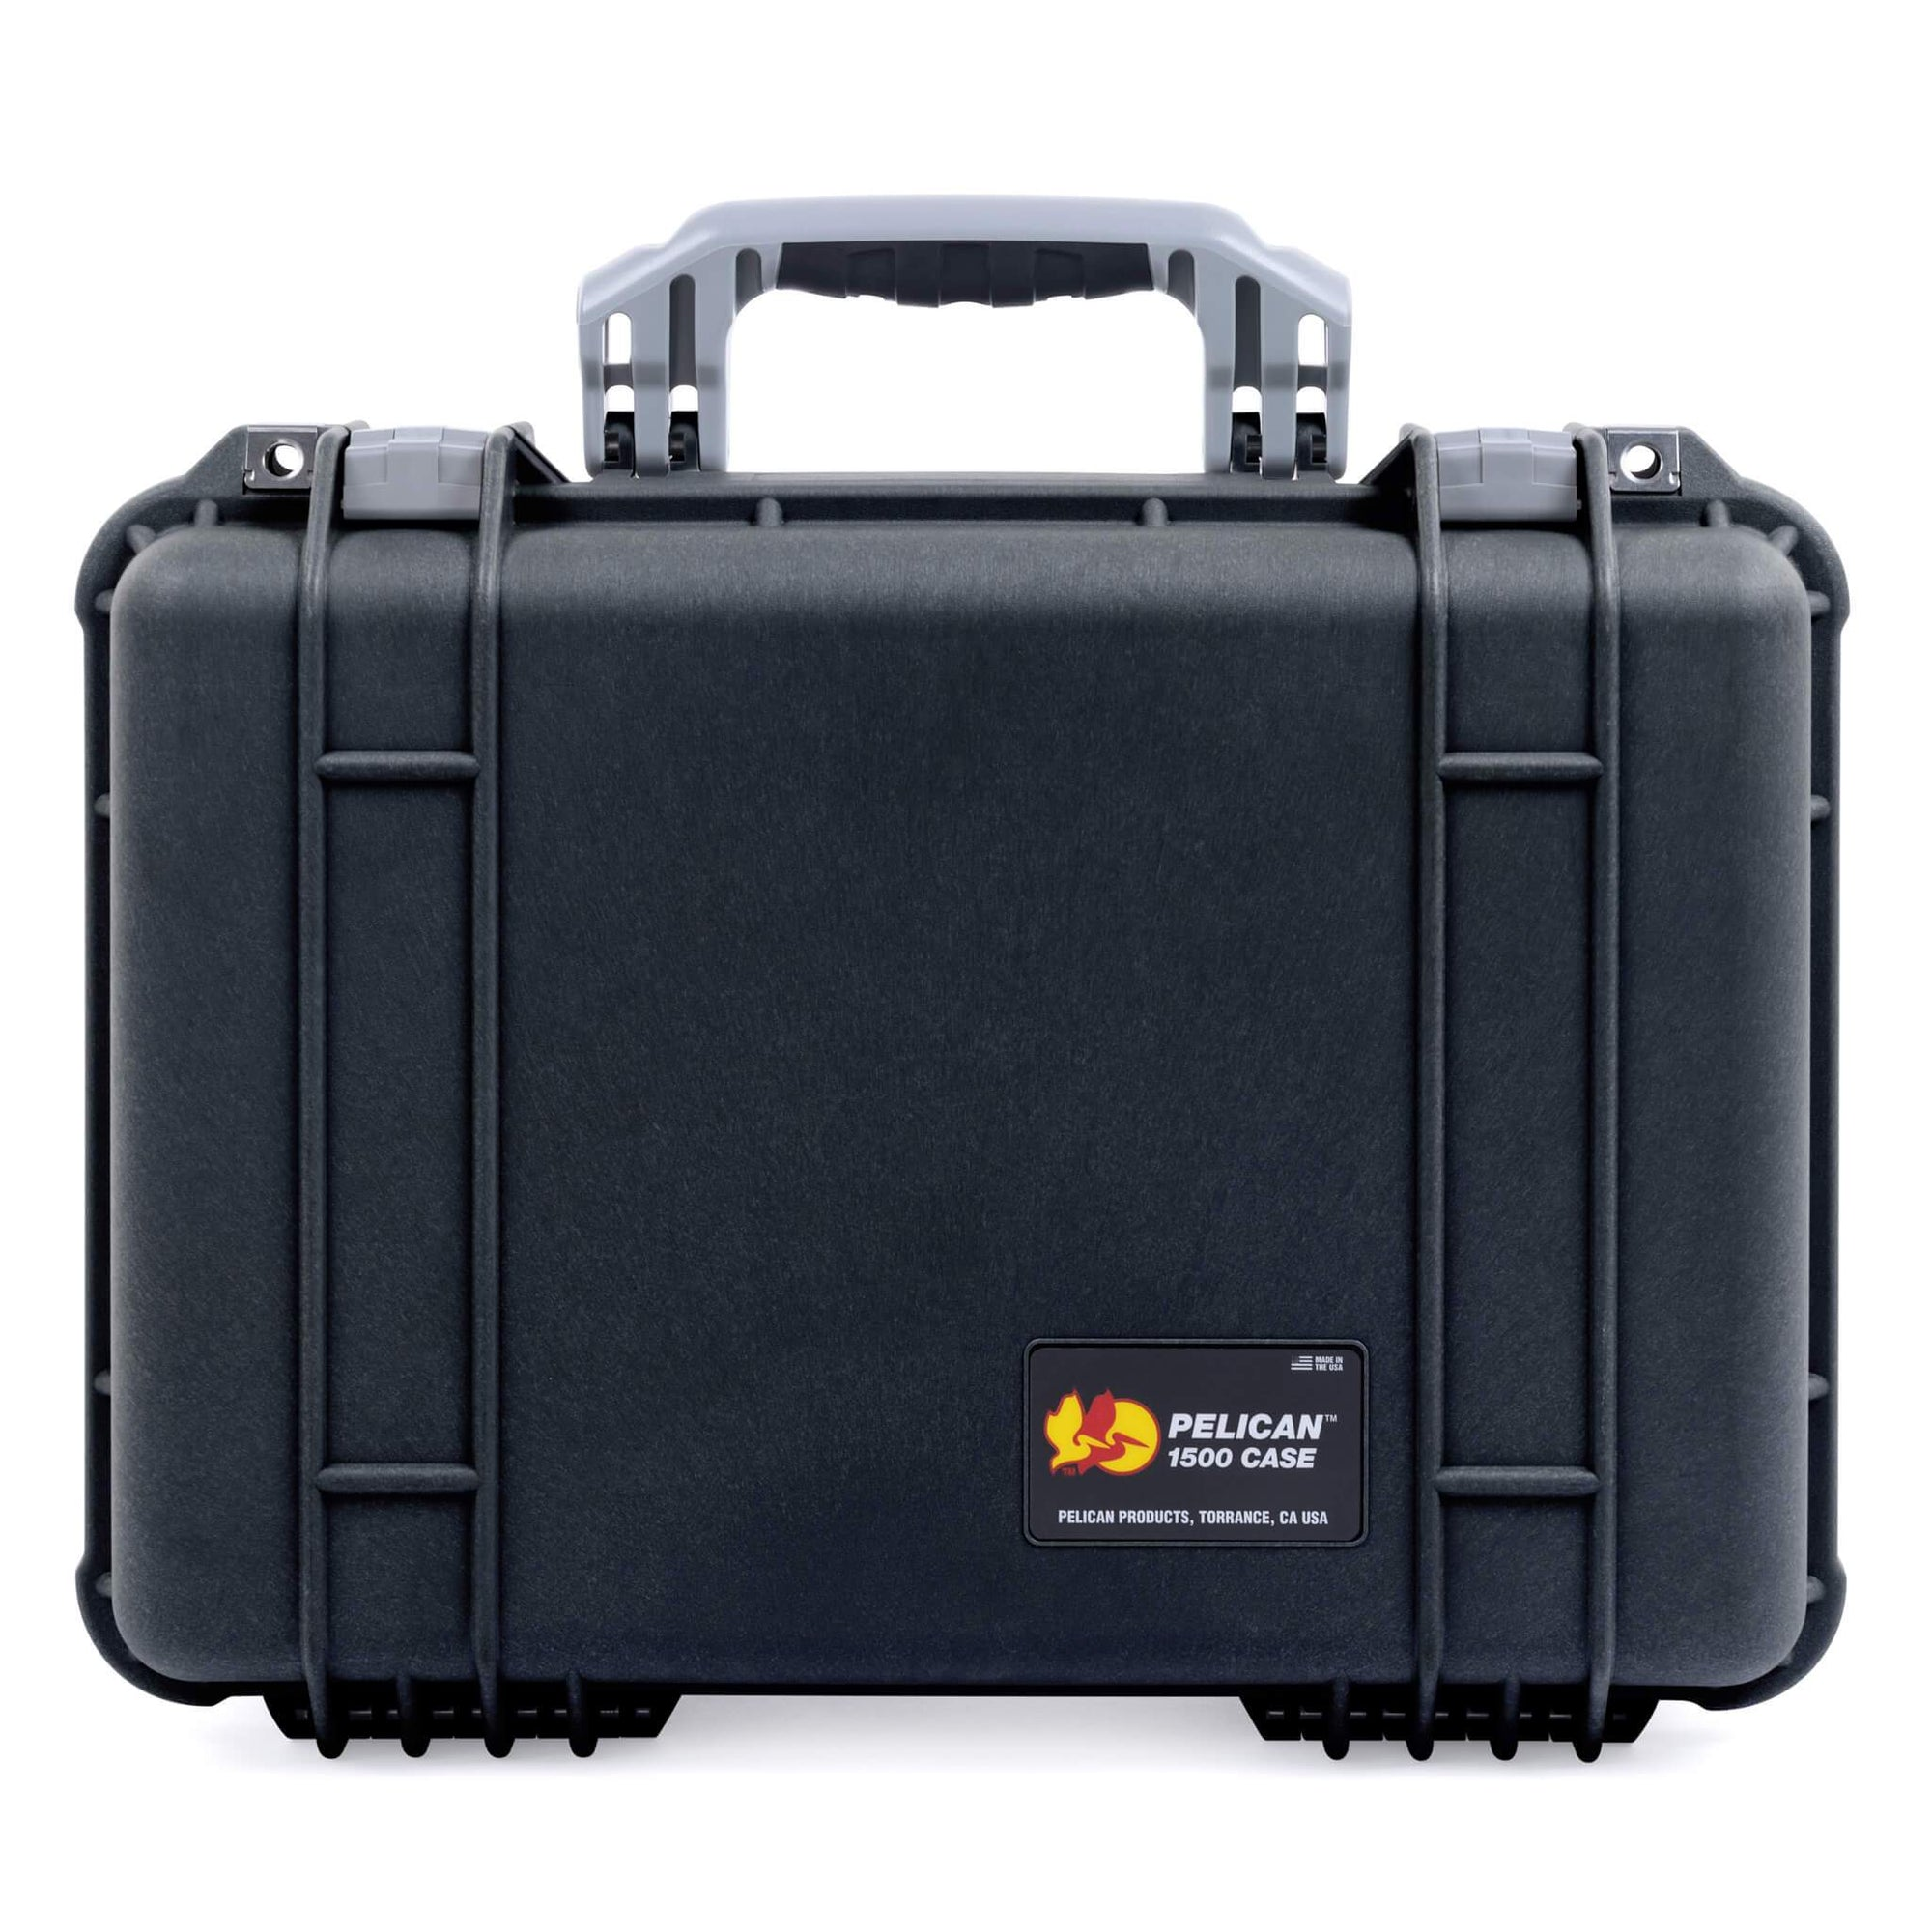 Pelican 1500 Case, Black with Silver Handle & Latches